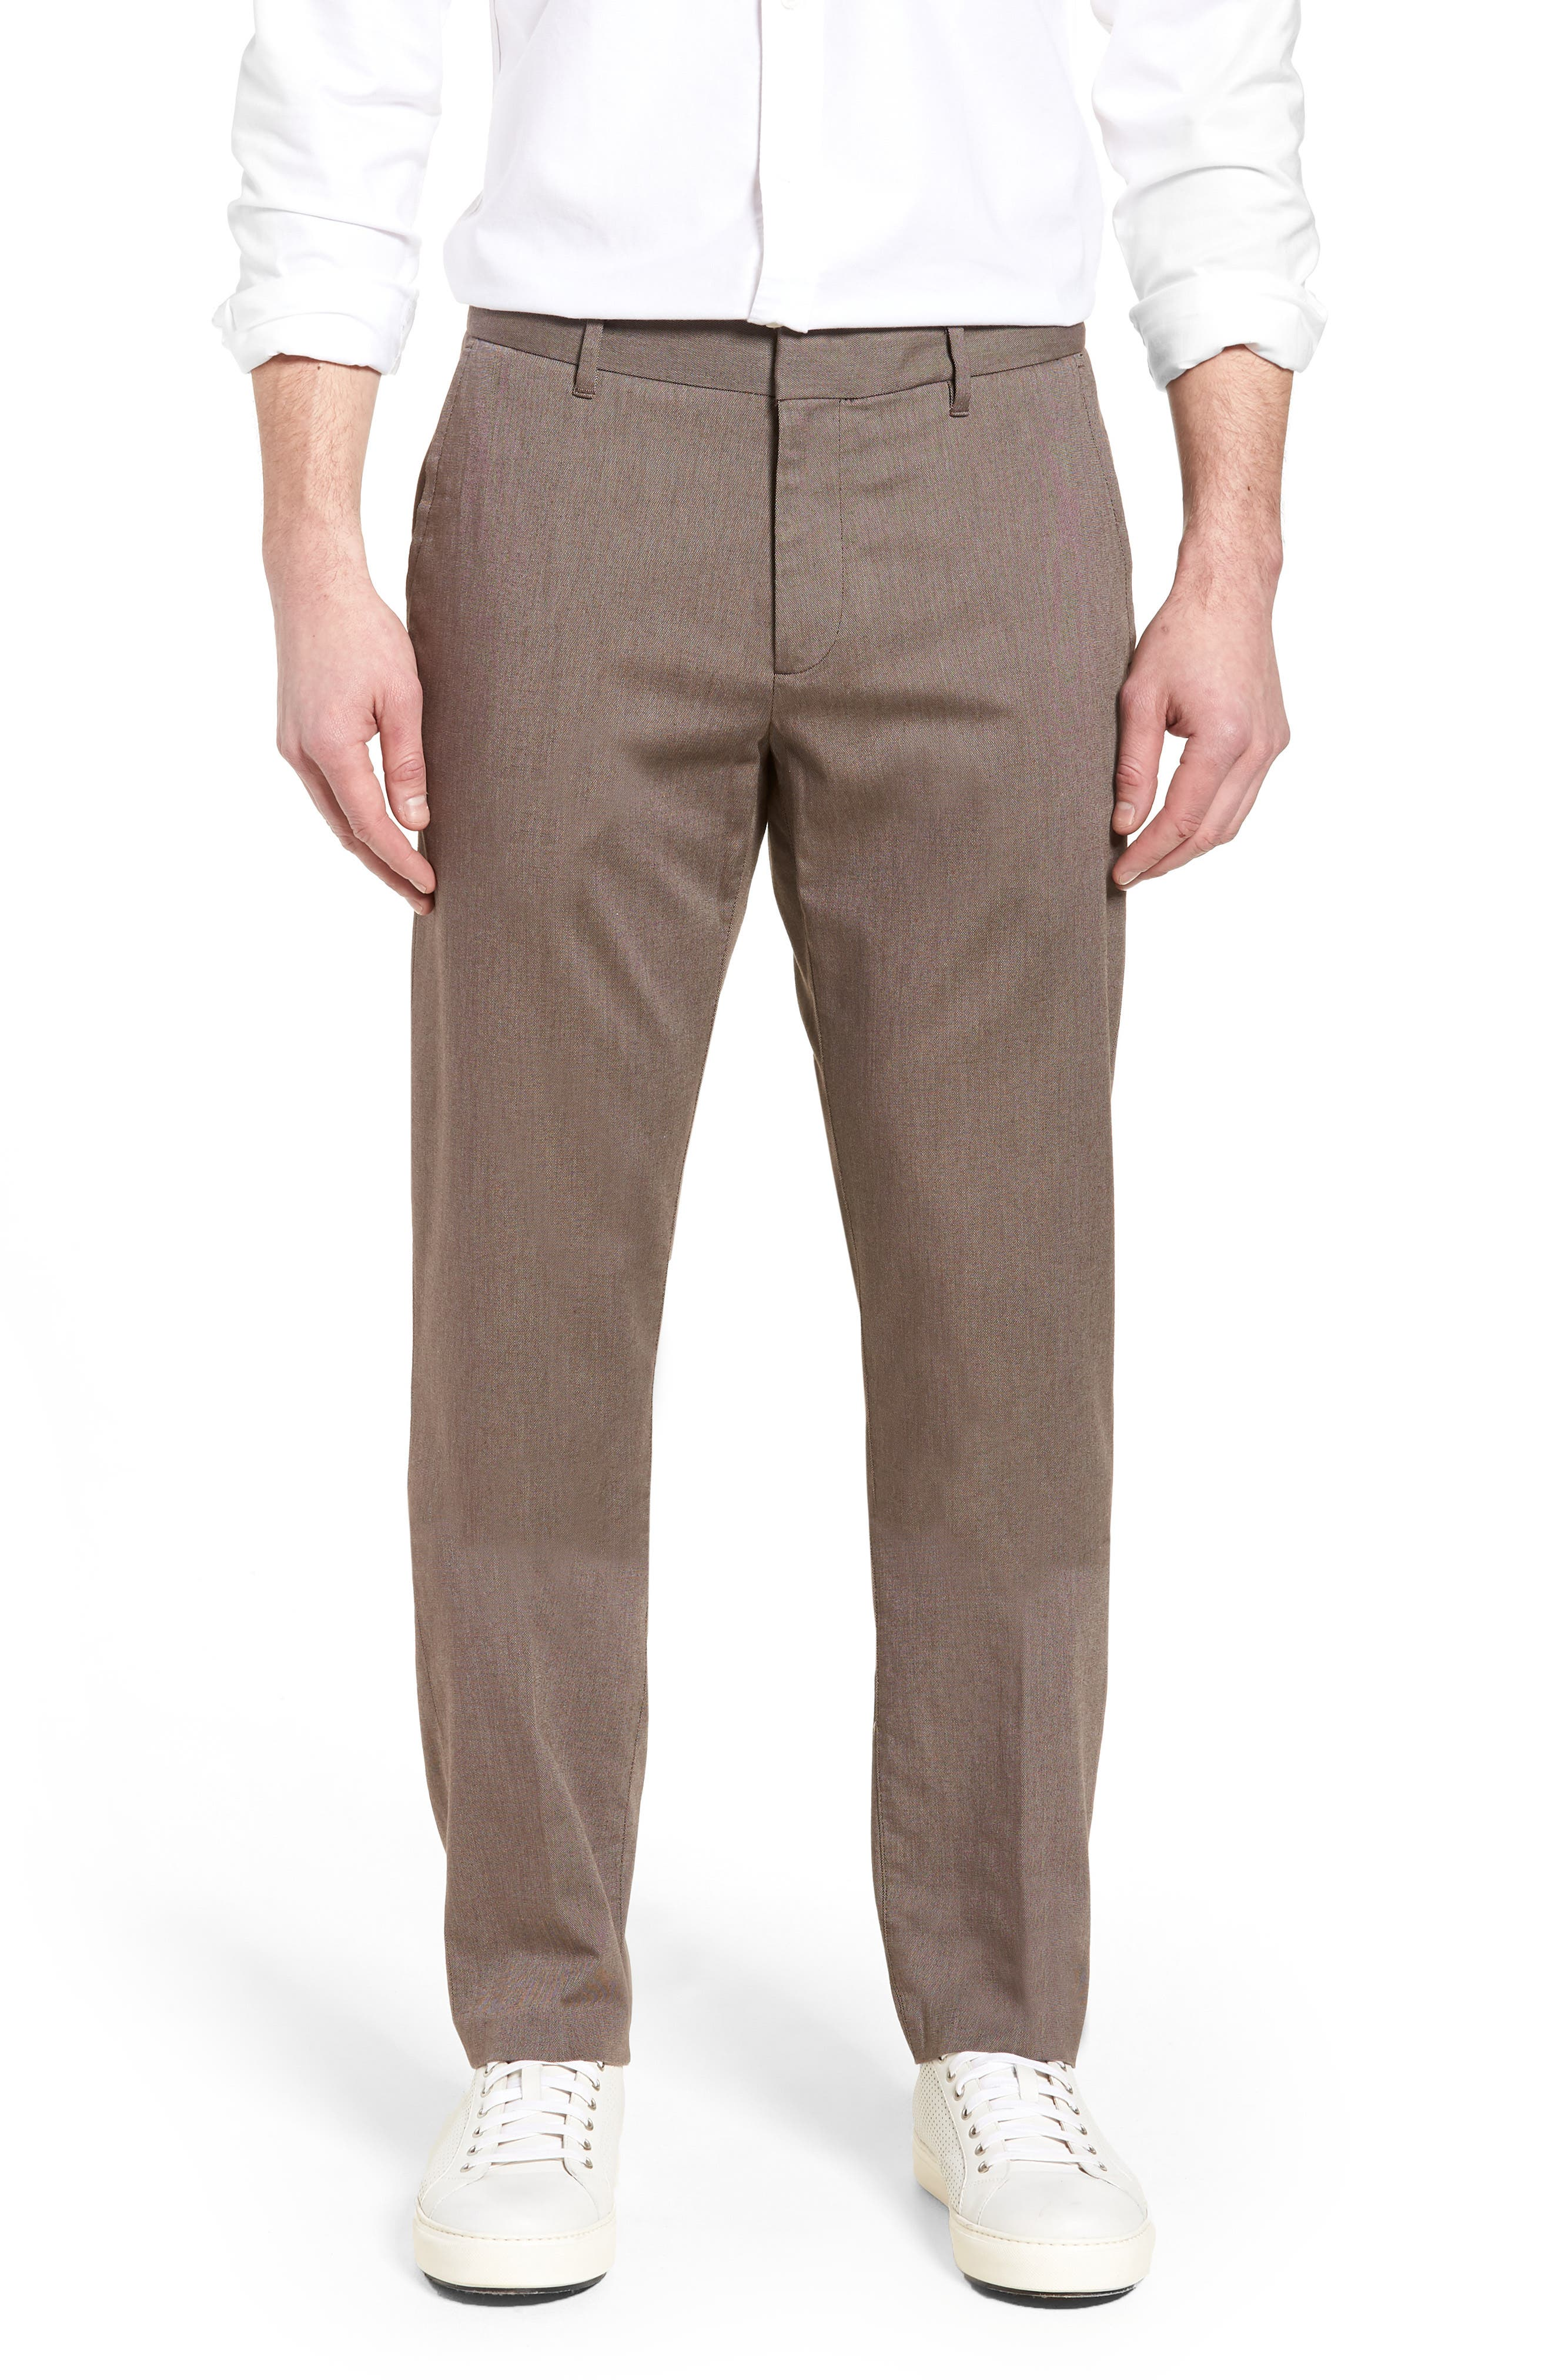 Weekday Warrior Flat Front Stretch Cotton Pants,                             Main thumbnail 1, color,                             200